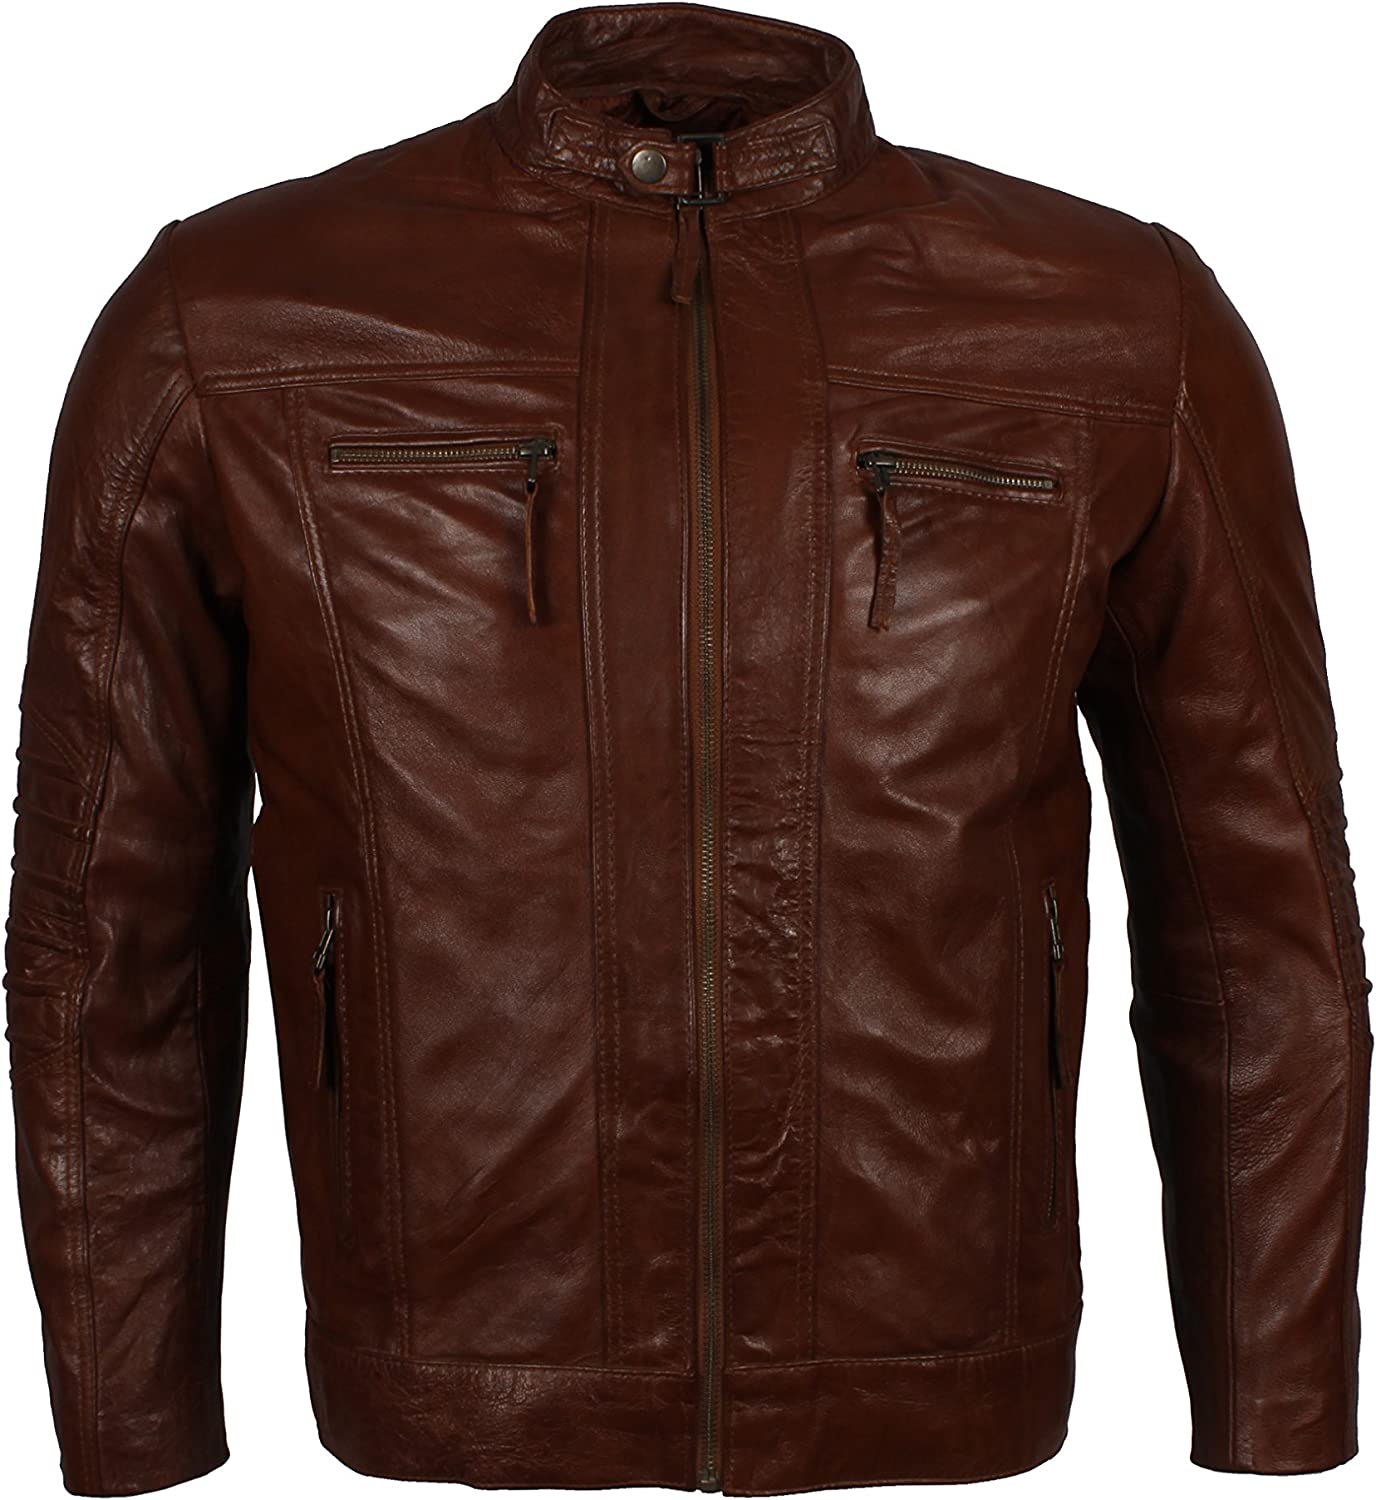 Herts Leather Mens Brown Waxed Persona Defining Real Leather Jacket